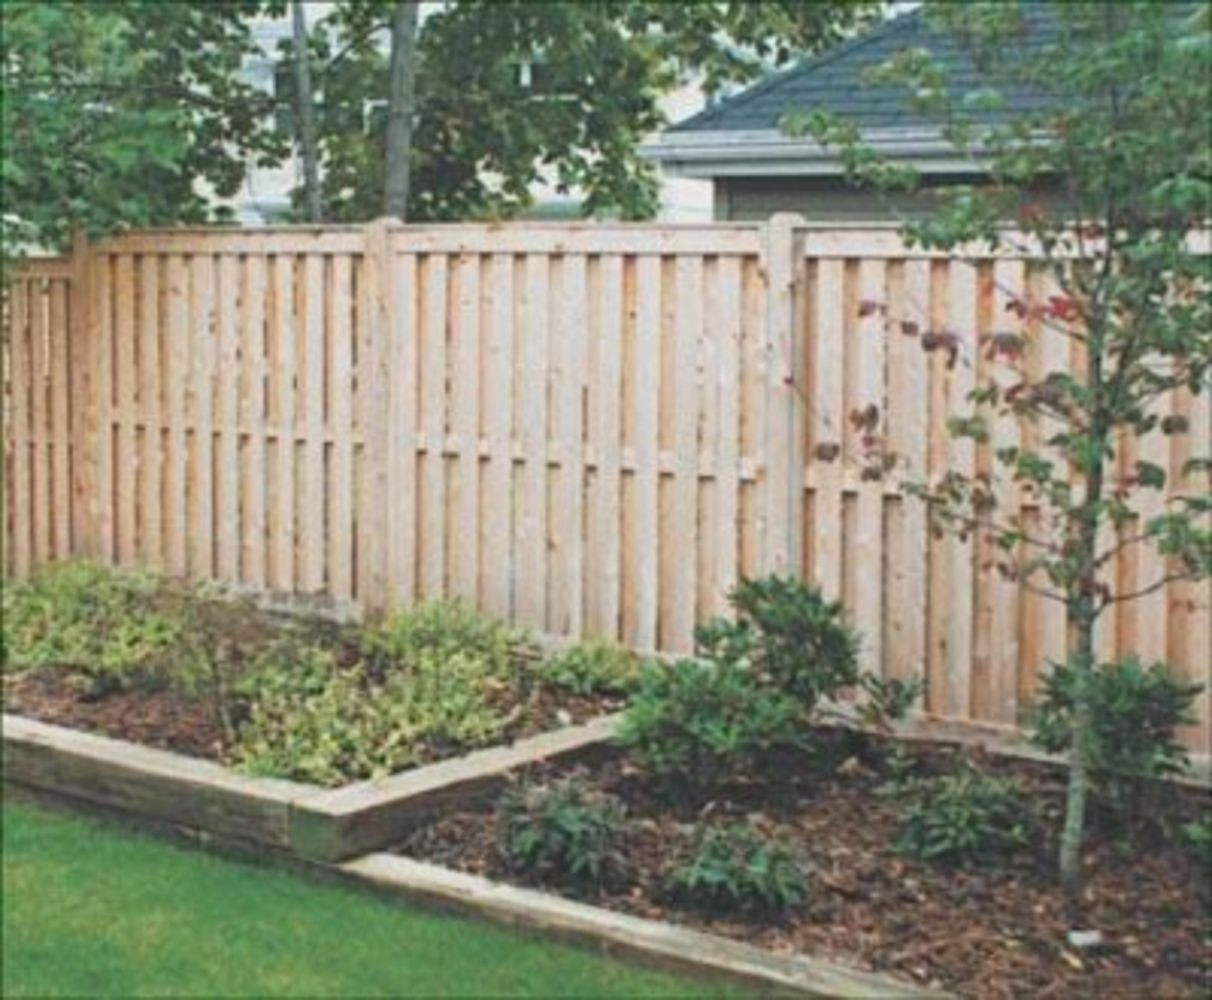 Best ideas about Cheap Fence DIY . Save or Pin Cheap diy privacy fence ideas 7 Wartaku Now.